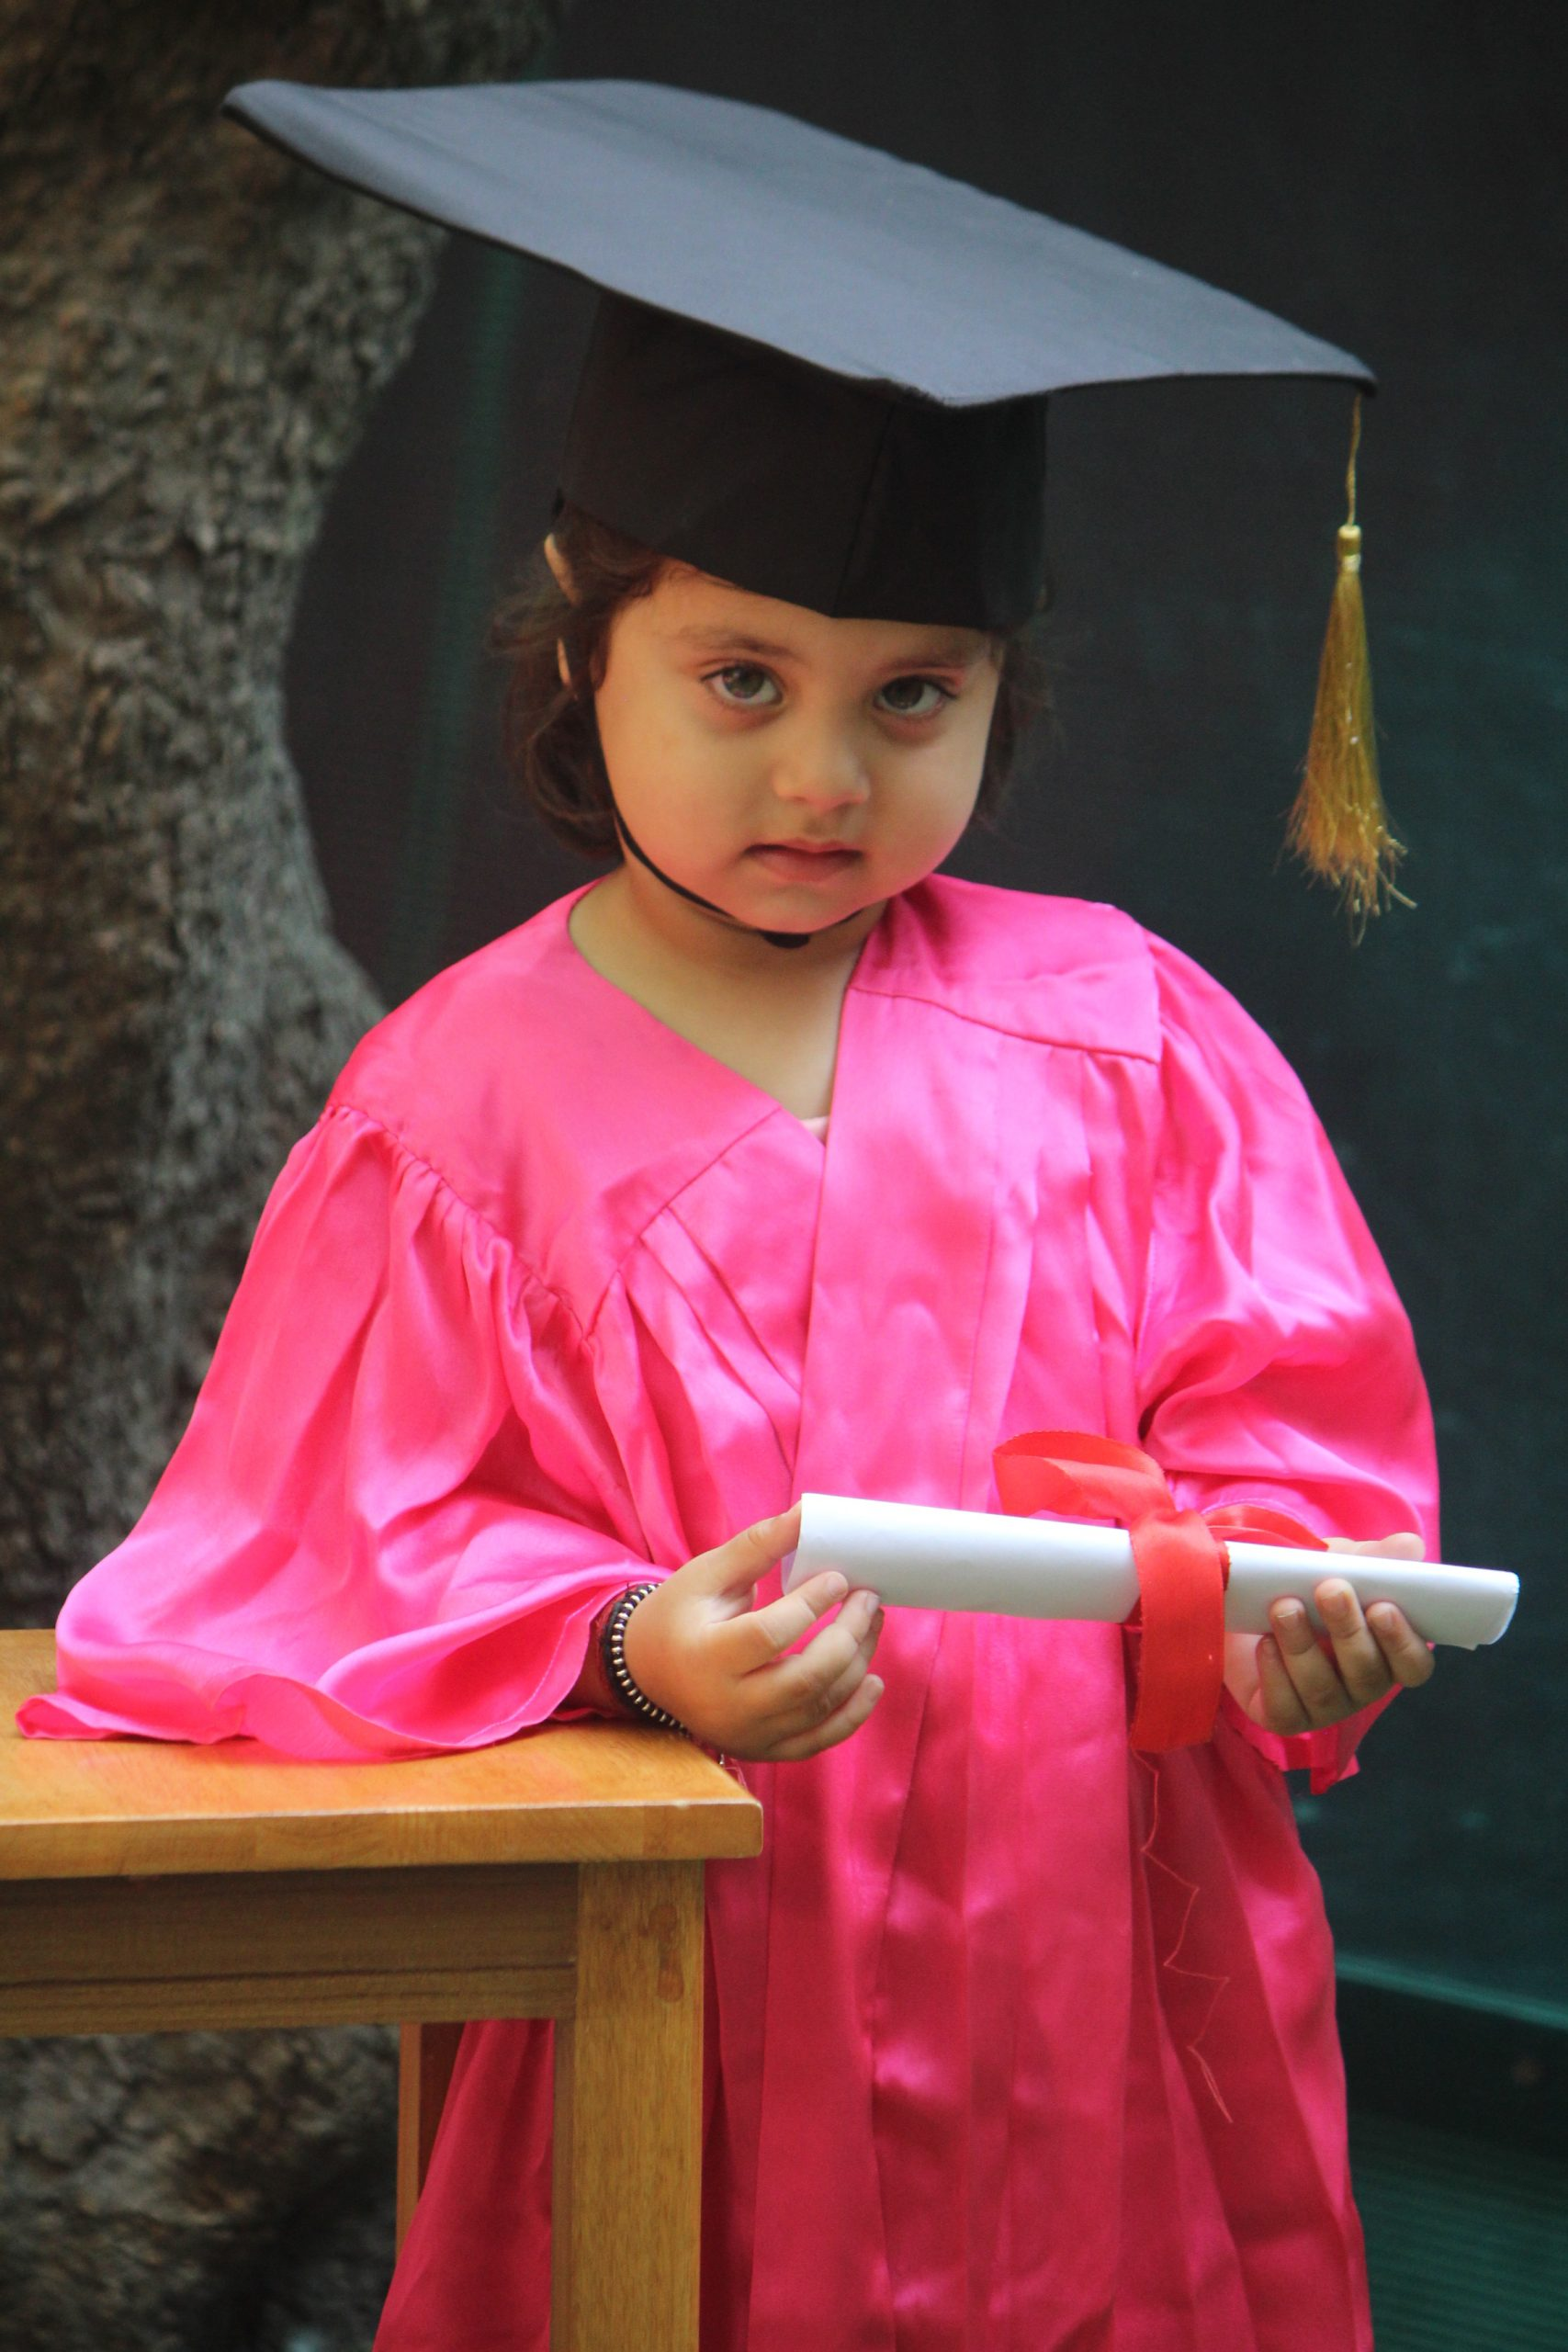 A kid in graduation day getup